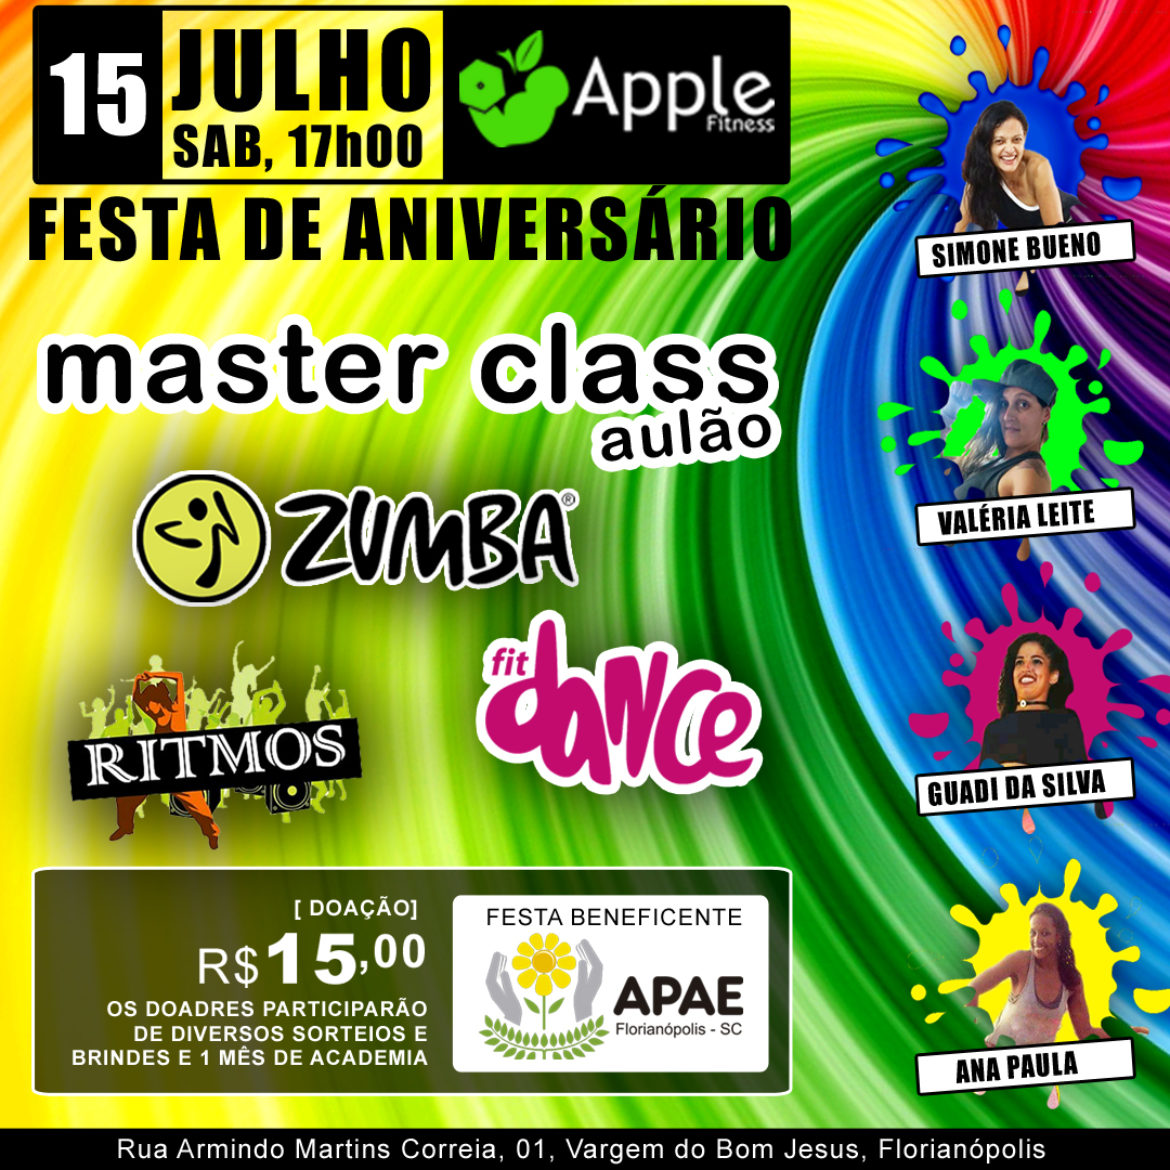 Apple Fitness & APAE